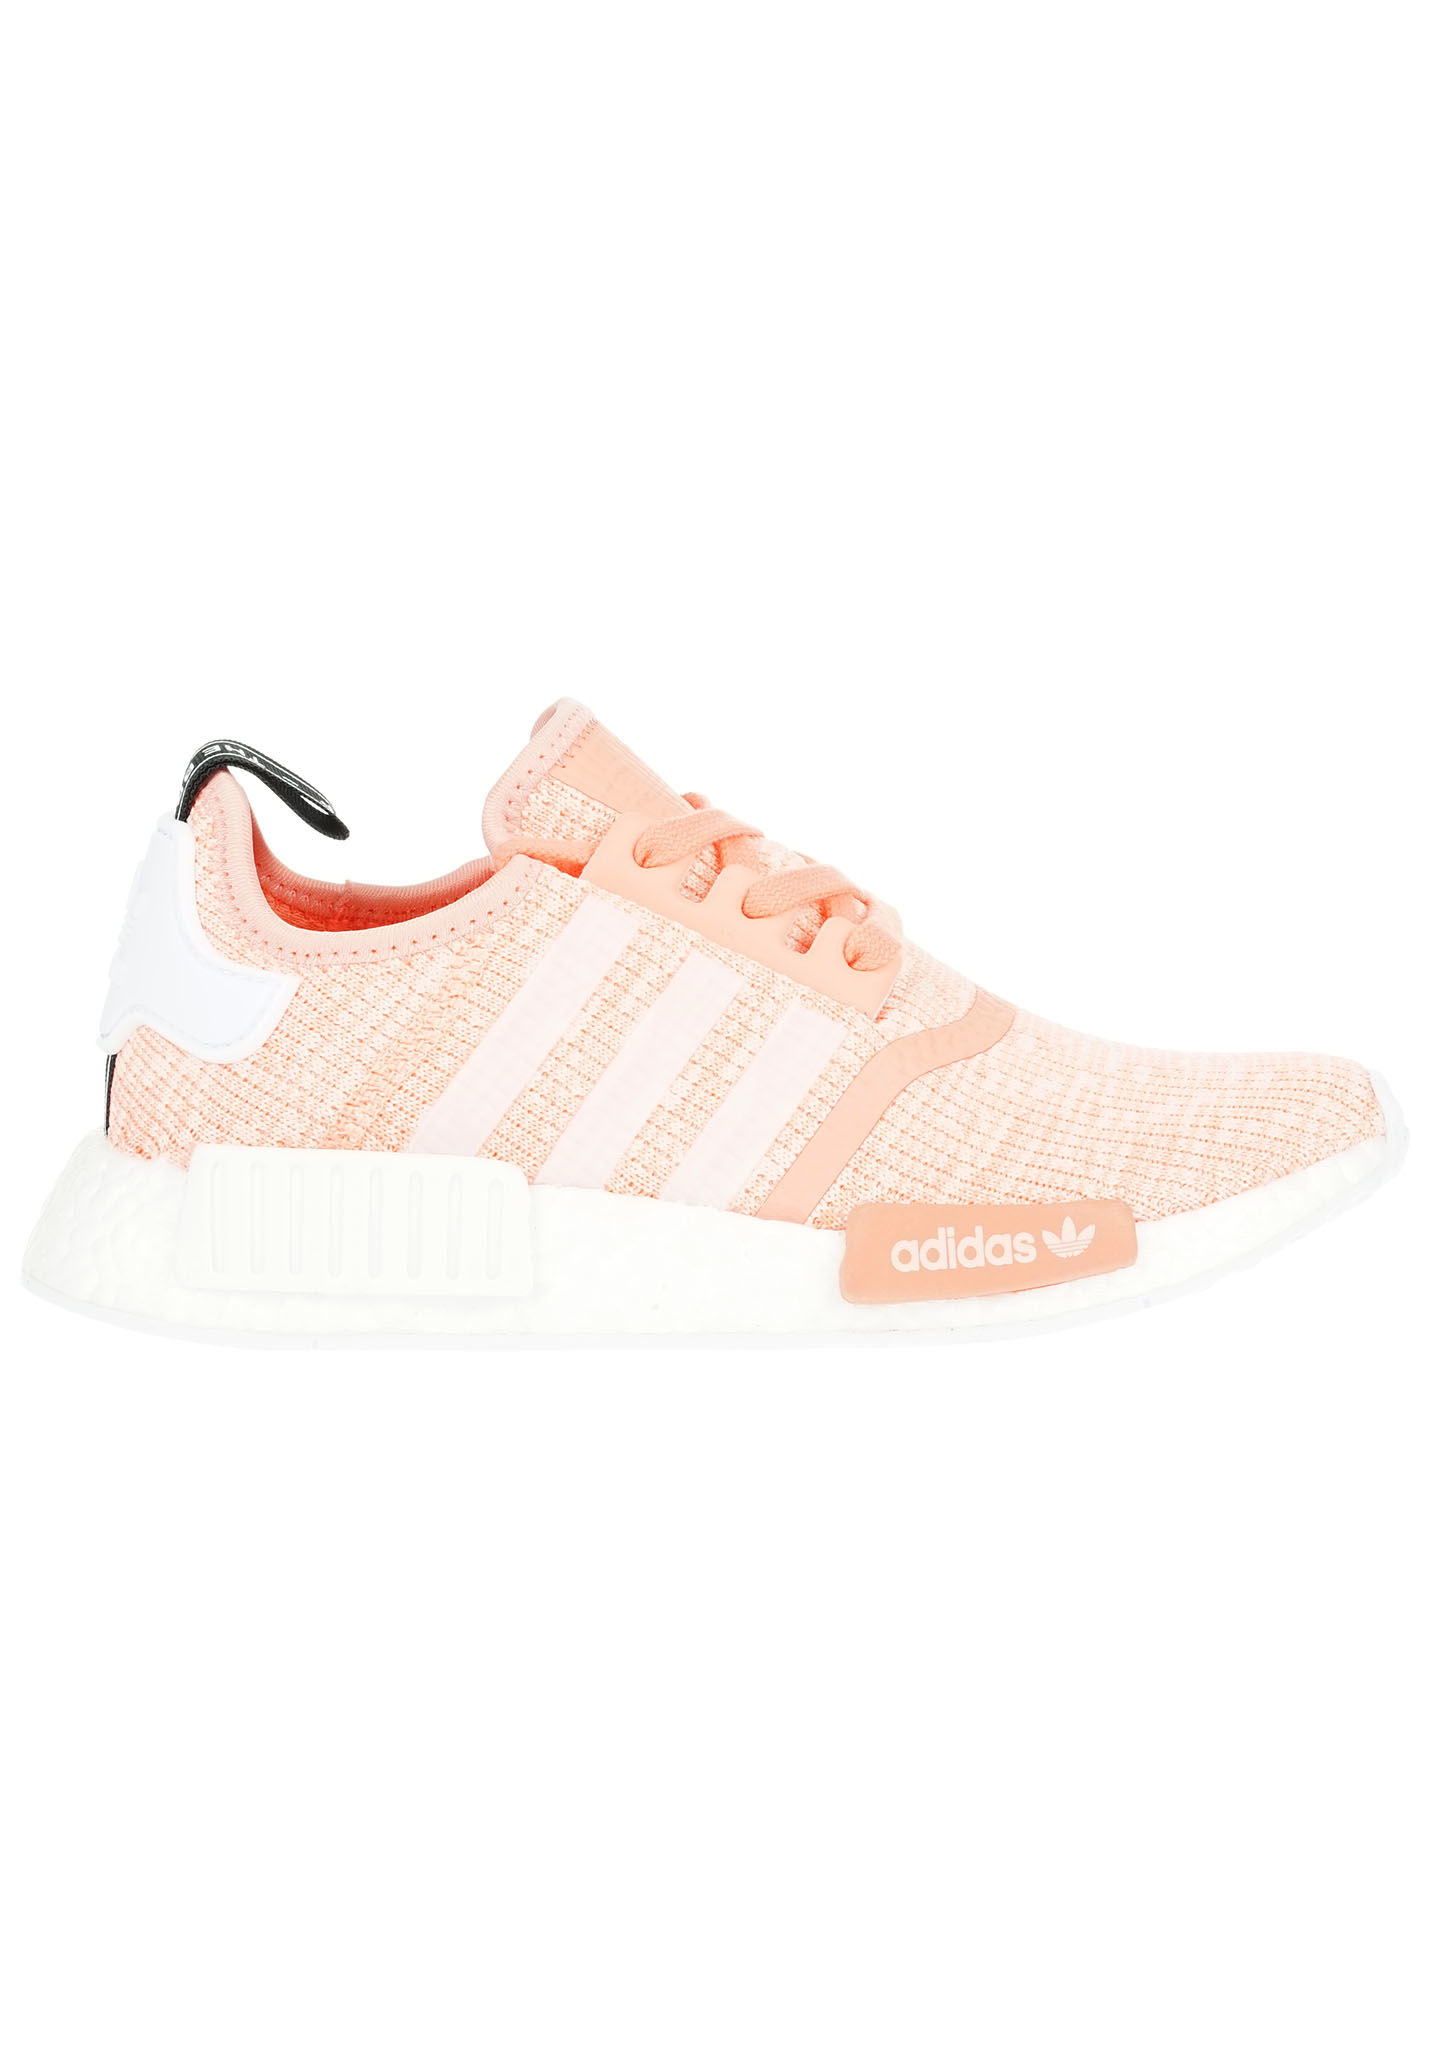 3e925138ce0 ADIDAS ORIGINALS NMD R1 - Zapatillas para Mujeres - Naranja - Planet Sports